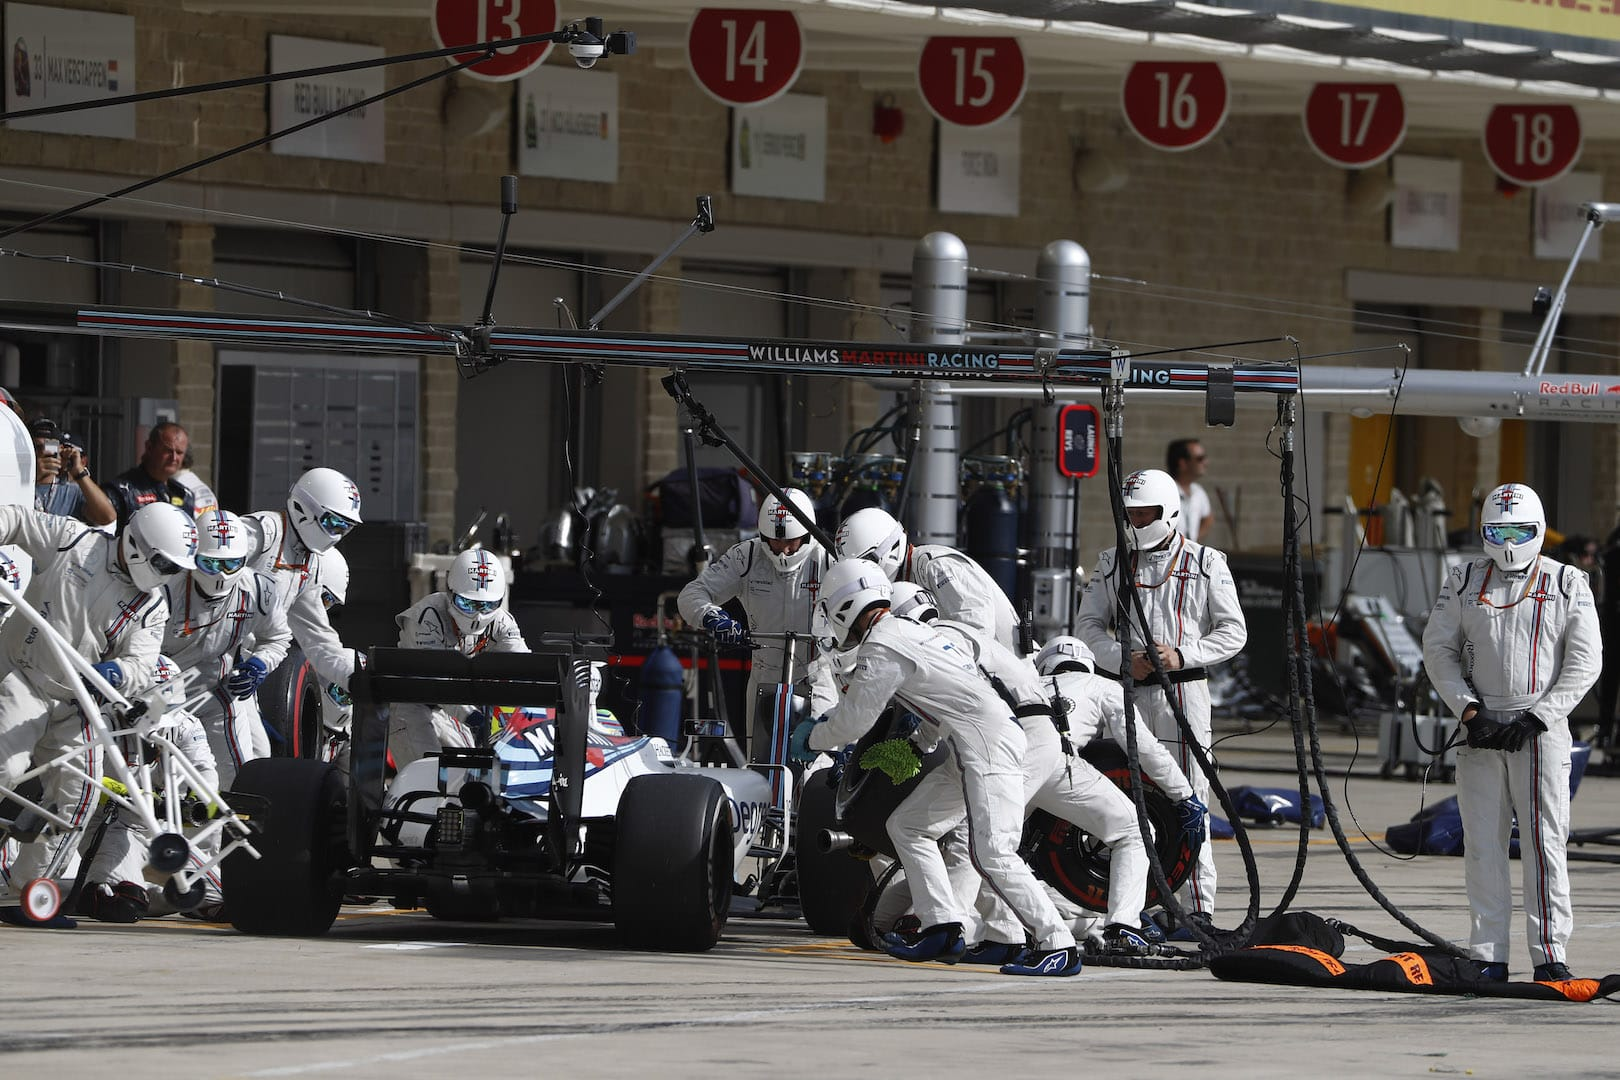 Circuit of the Americas, Austin Texas, USA. Sunday 23 October 2016. Felipe Massa, Williams FW38 Mercedes, makes a pit stop during the race. Photo: Glenn Dunbar/Williams ref: Digital Image _31I4798